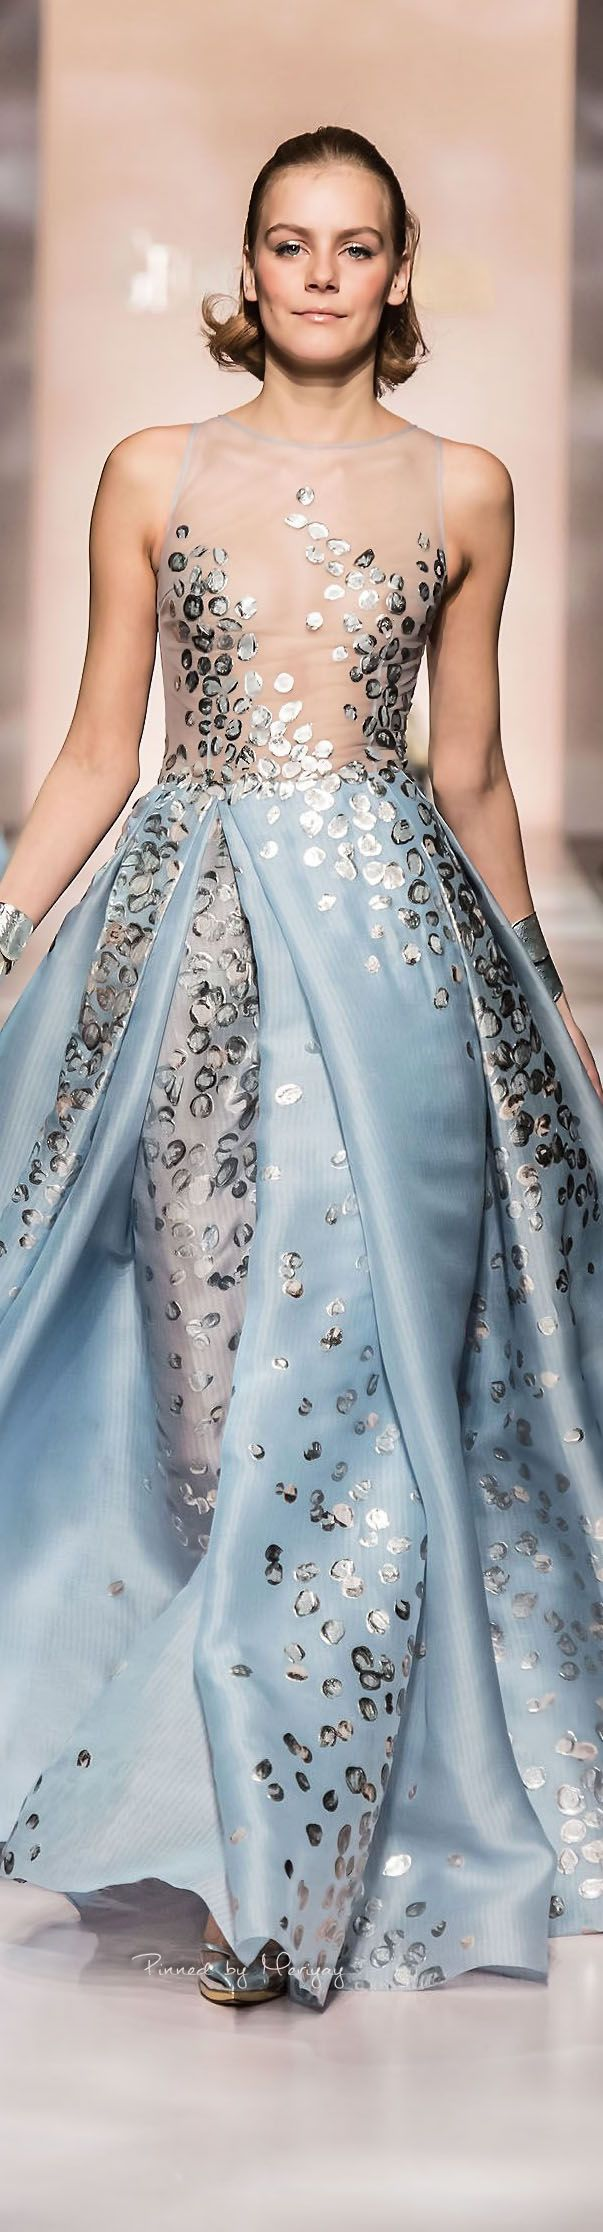 Georges Chakra Spring-summer 2015 - Couture. #FashionSerendipity #fashion #style